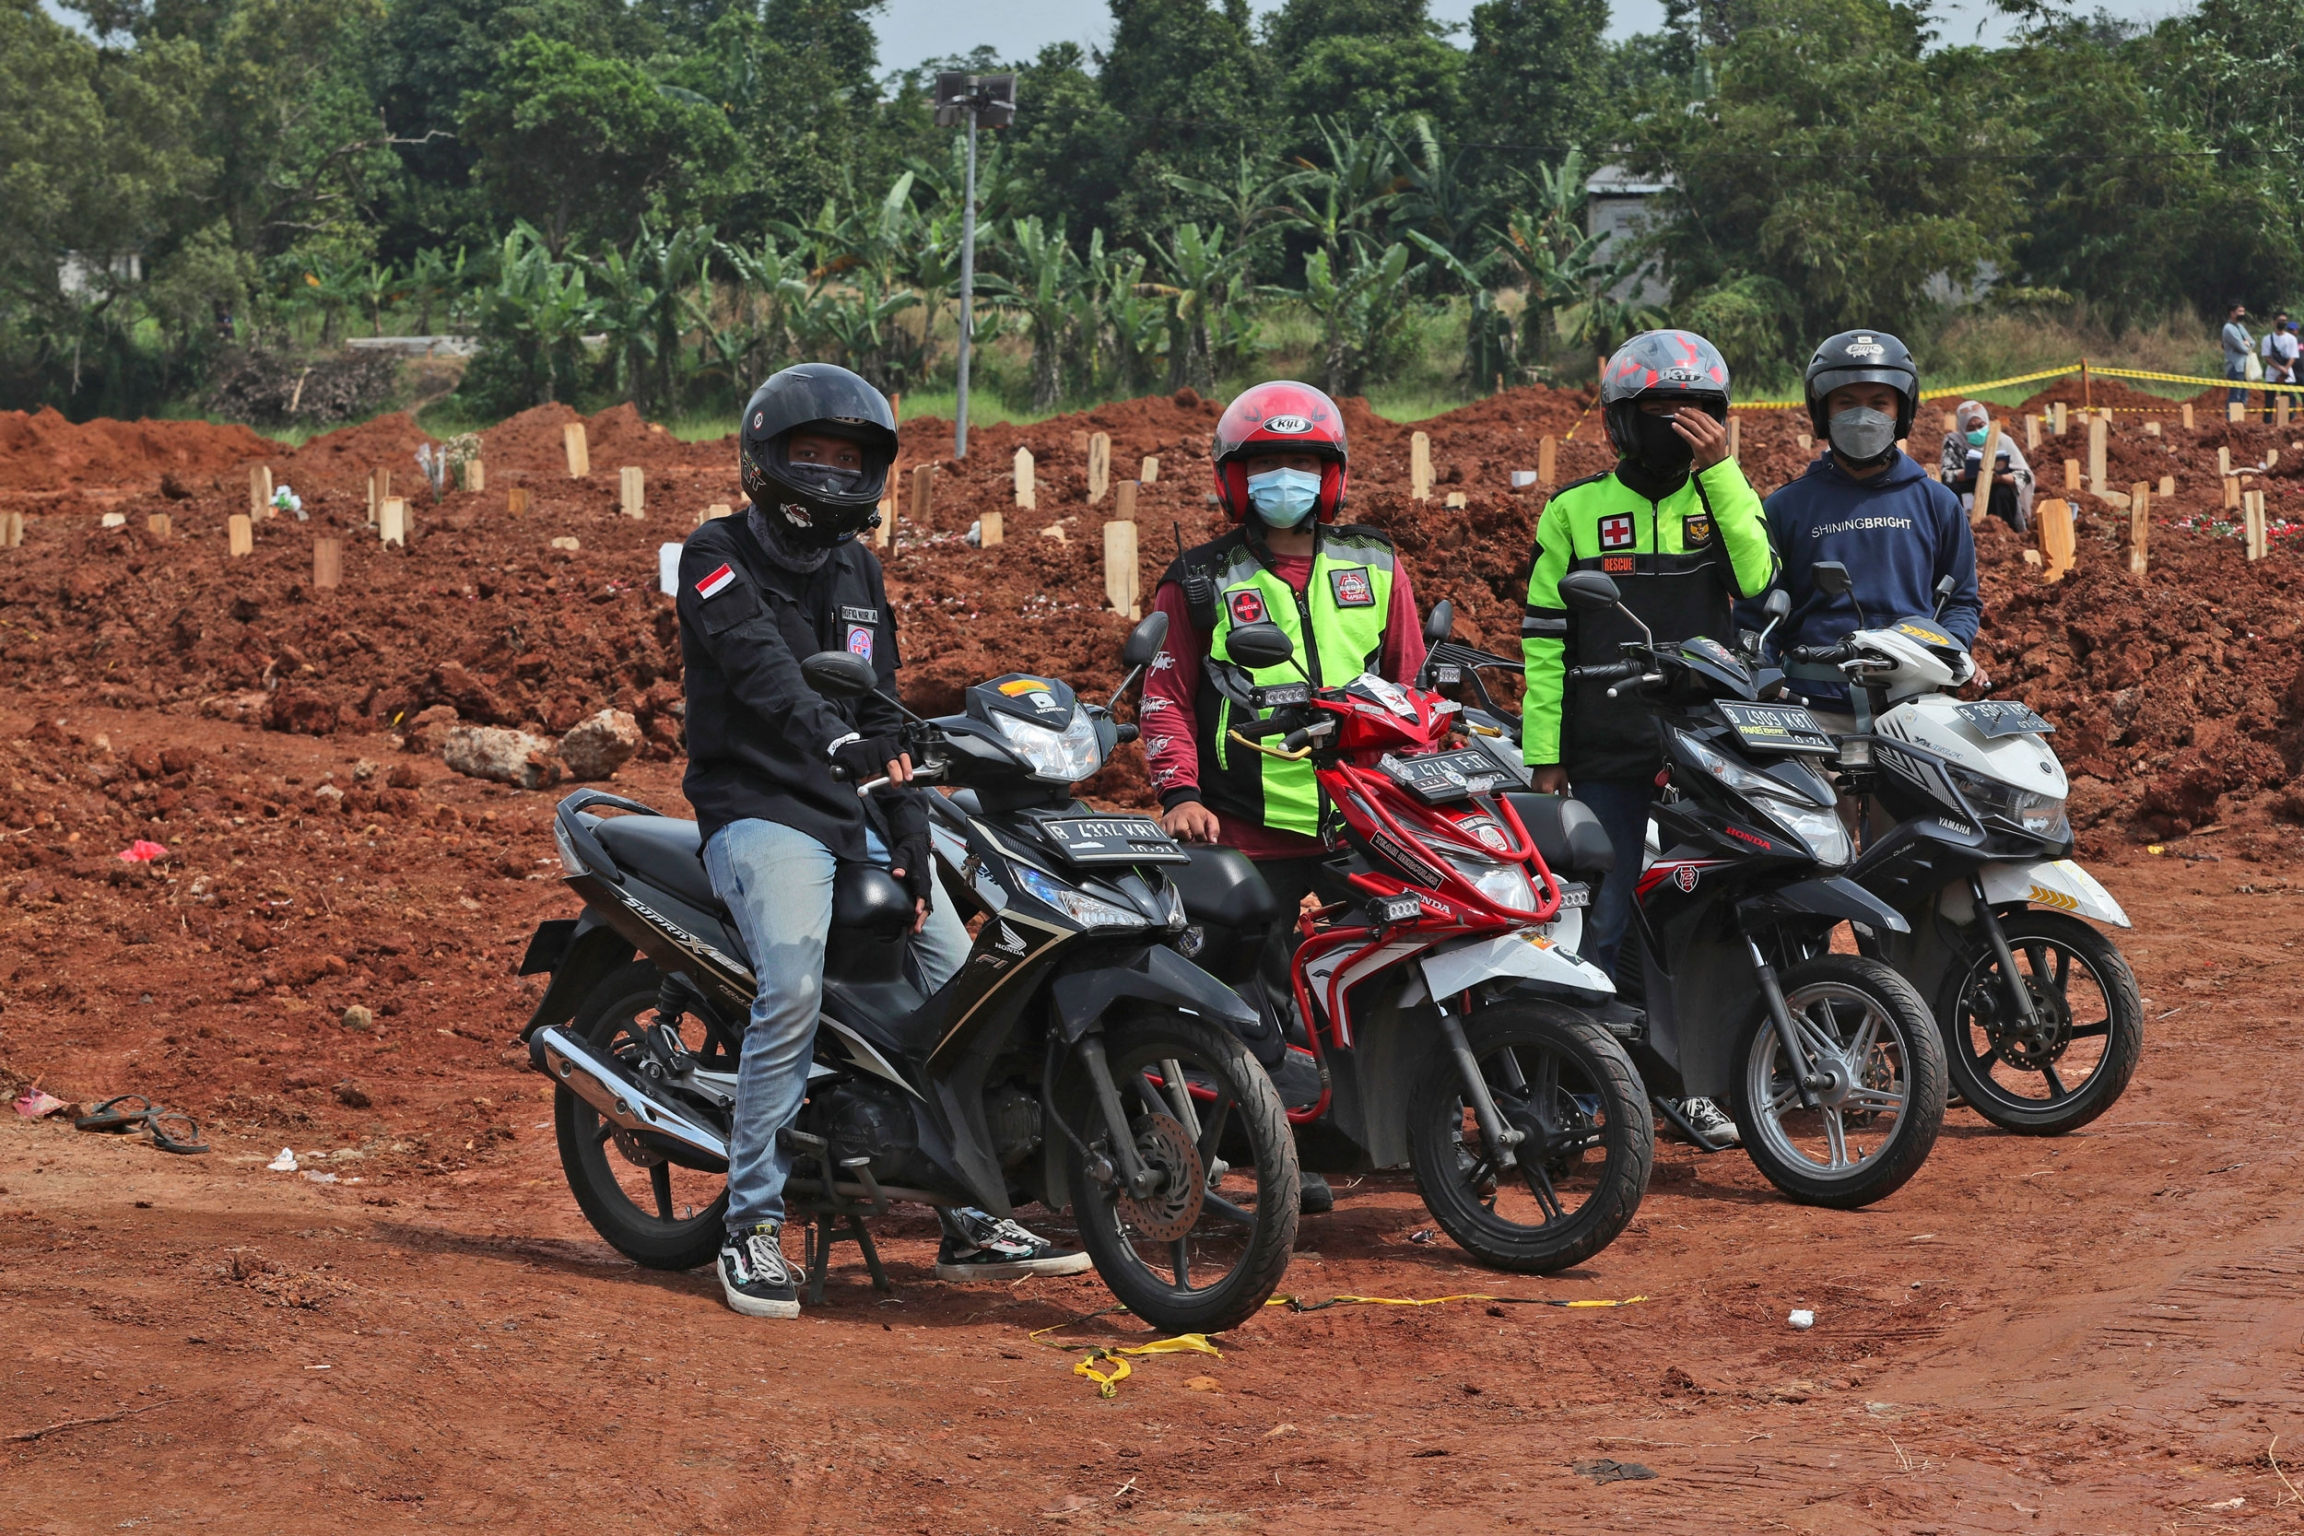 Four people are shown sitting or standing next to motorbikes with a cemetary in the background.